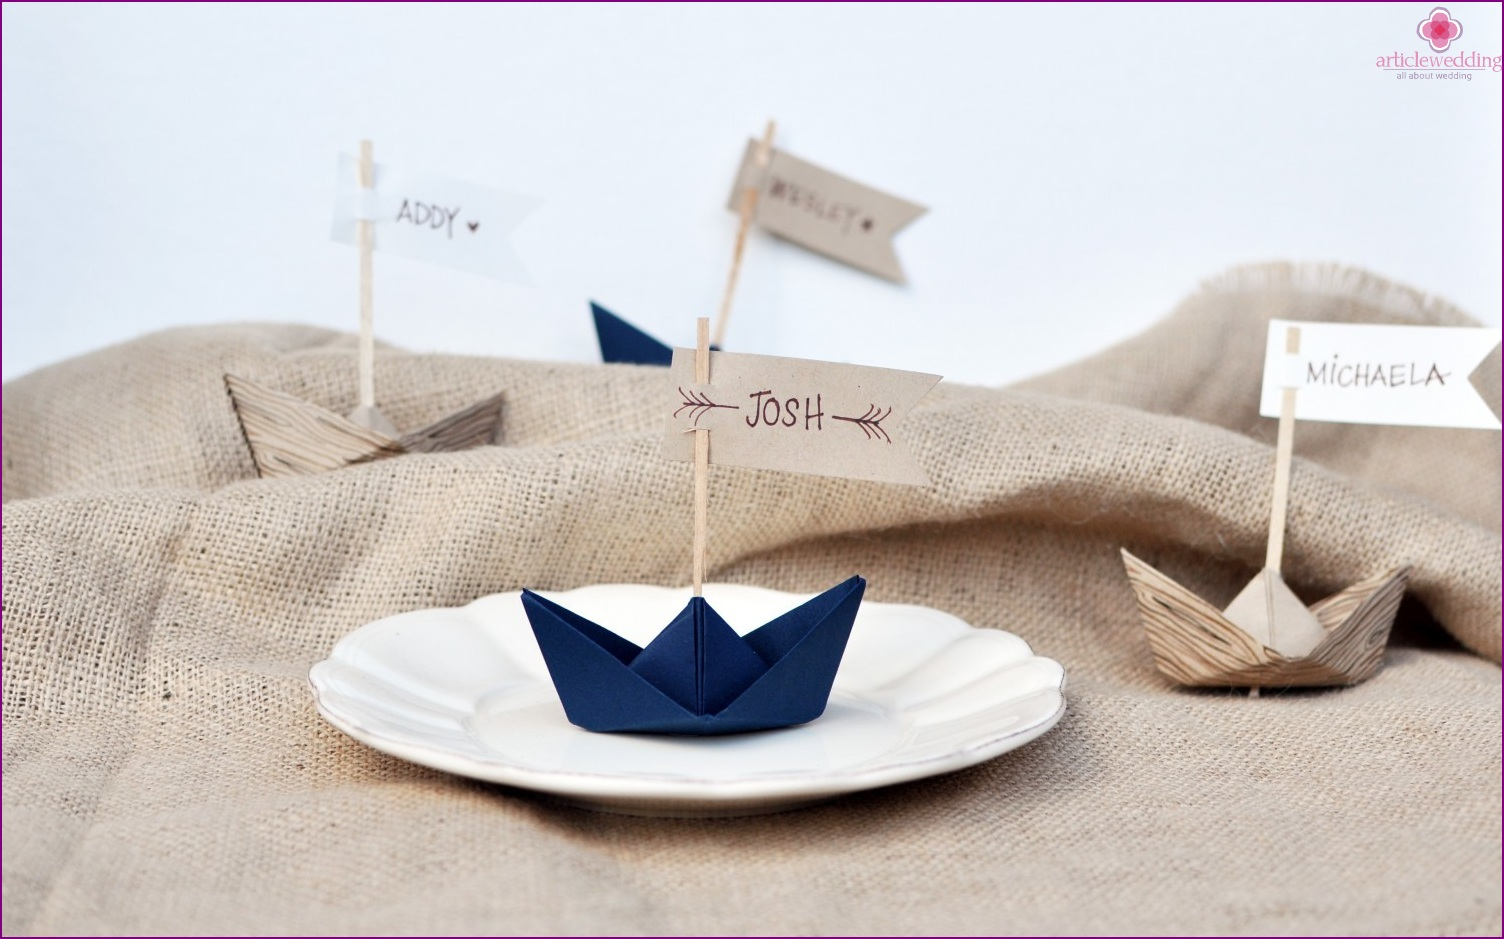 Origami paper boats for decorating wedding tables